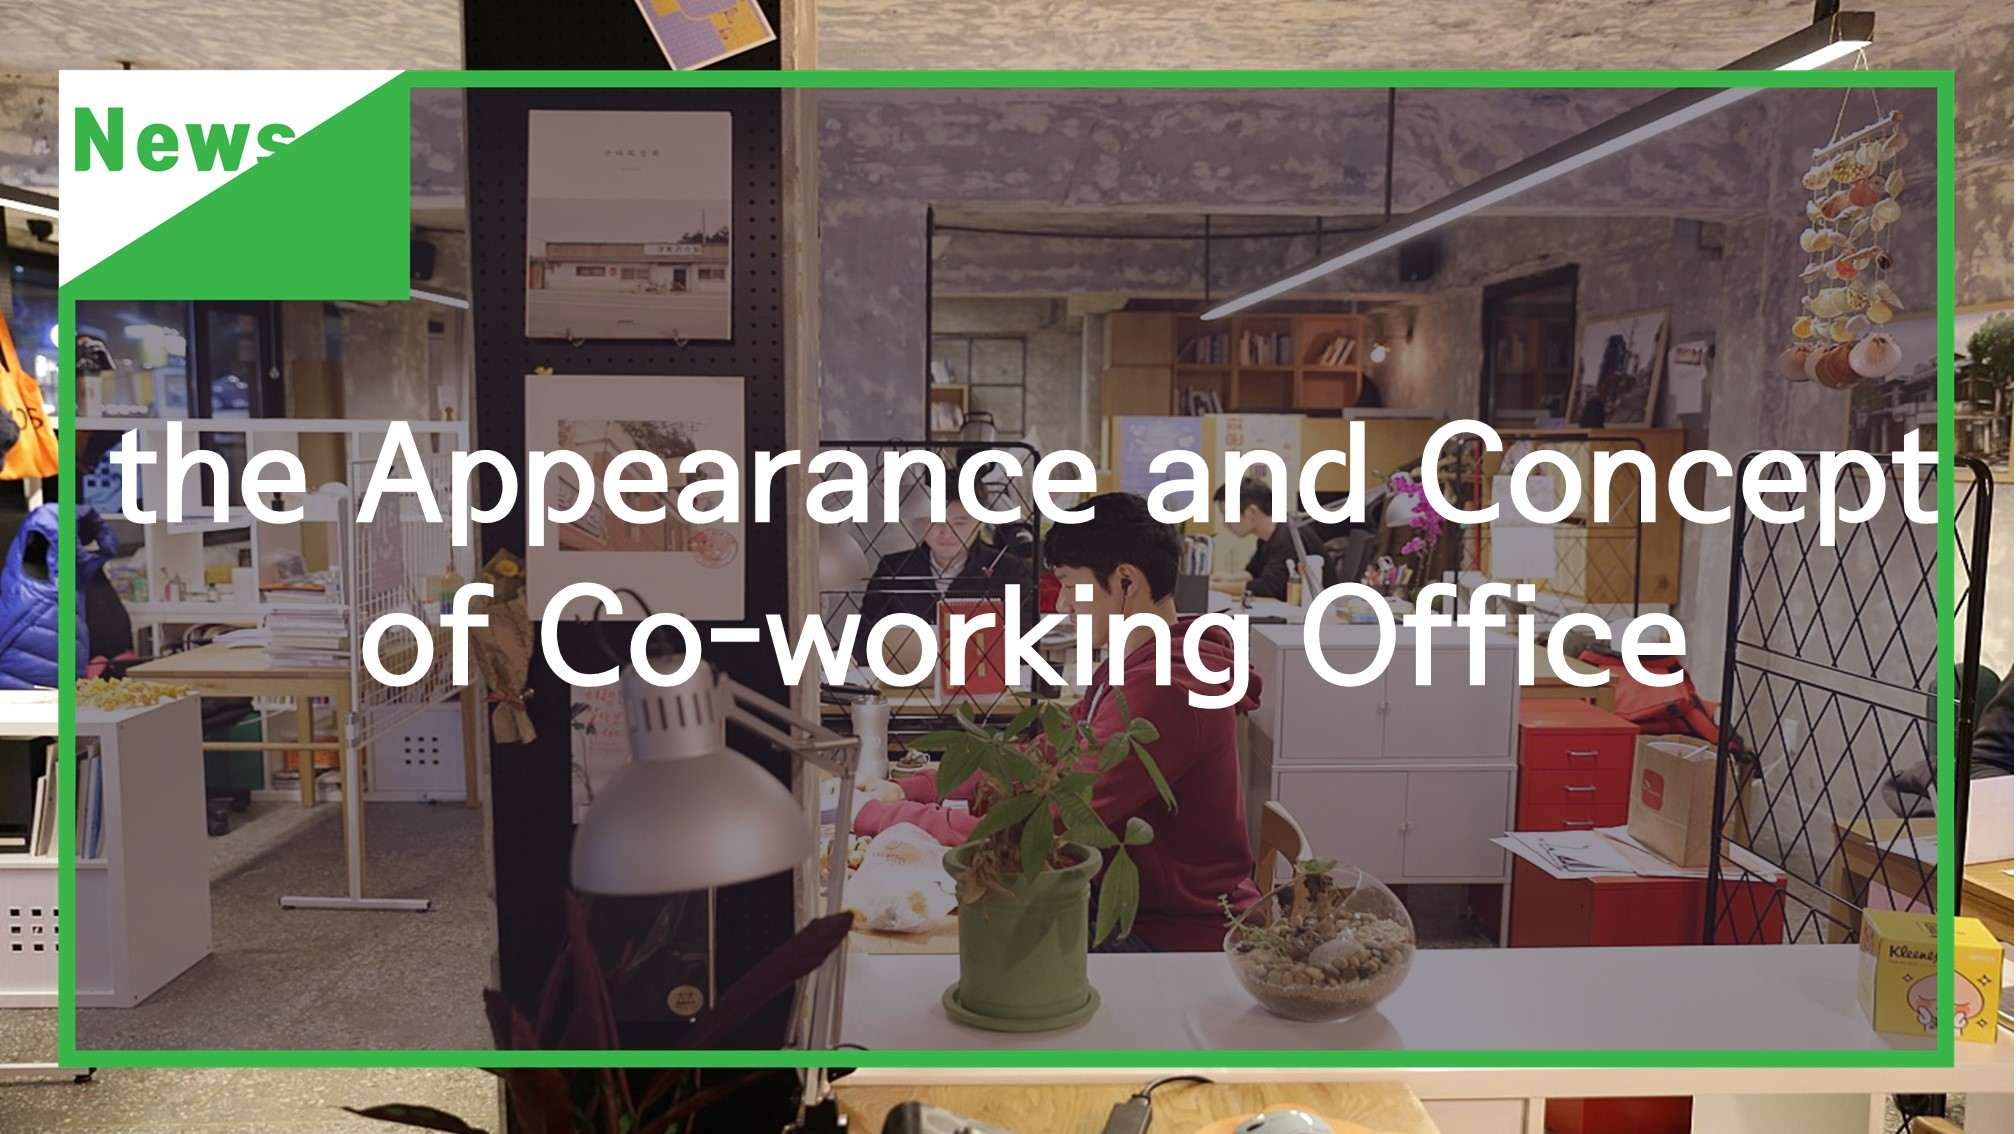 [Resources] the Appearance and Concept of Co-working Office